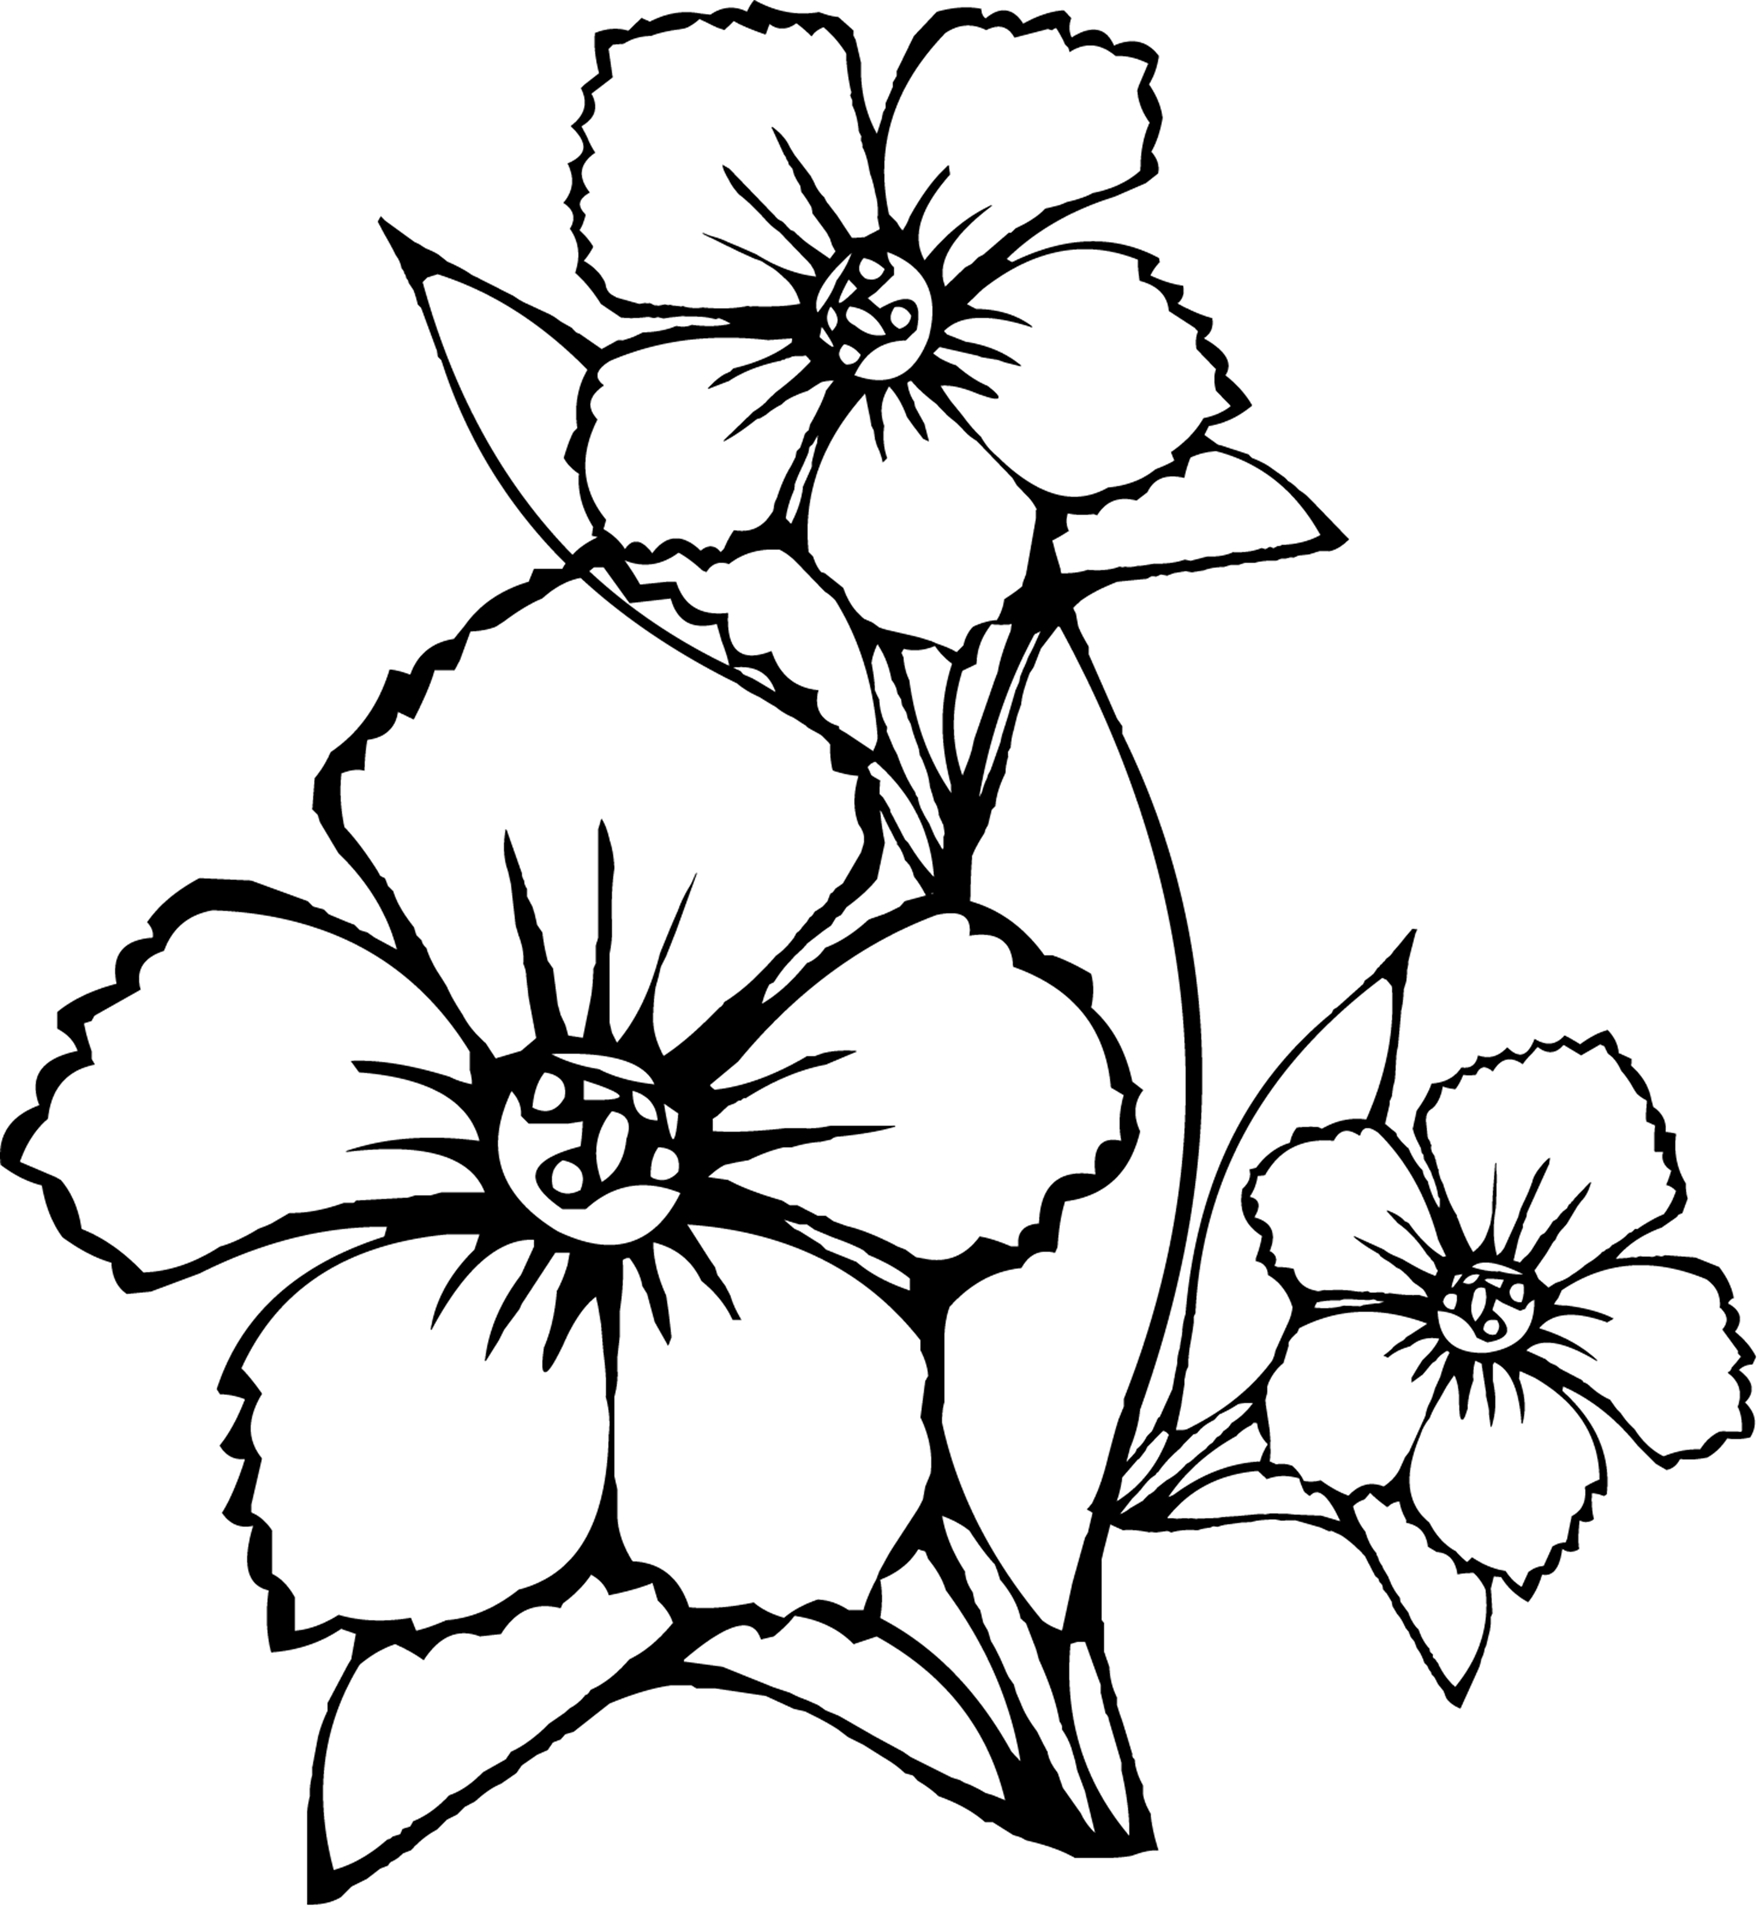 coloring picture of flower free easy to print flower coloring pages tulamama picture of flower coloring